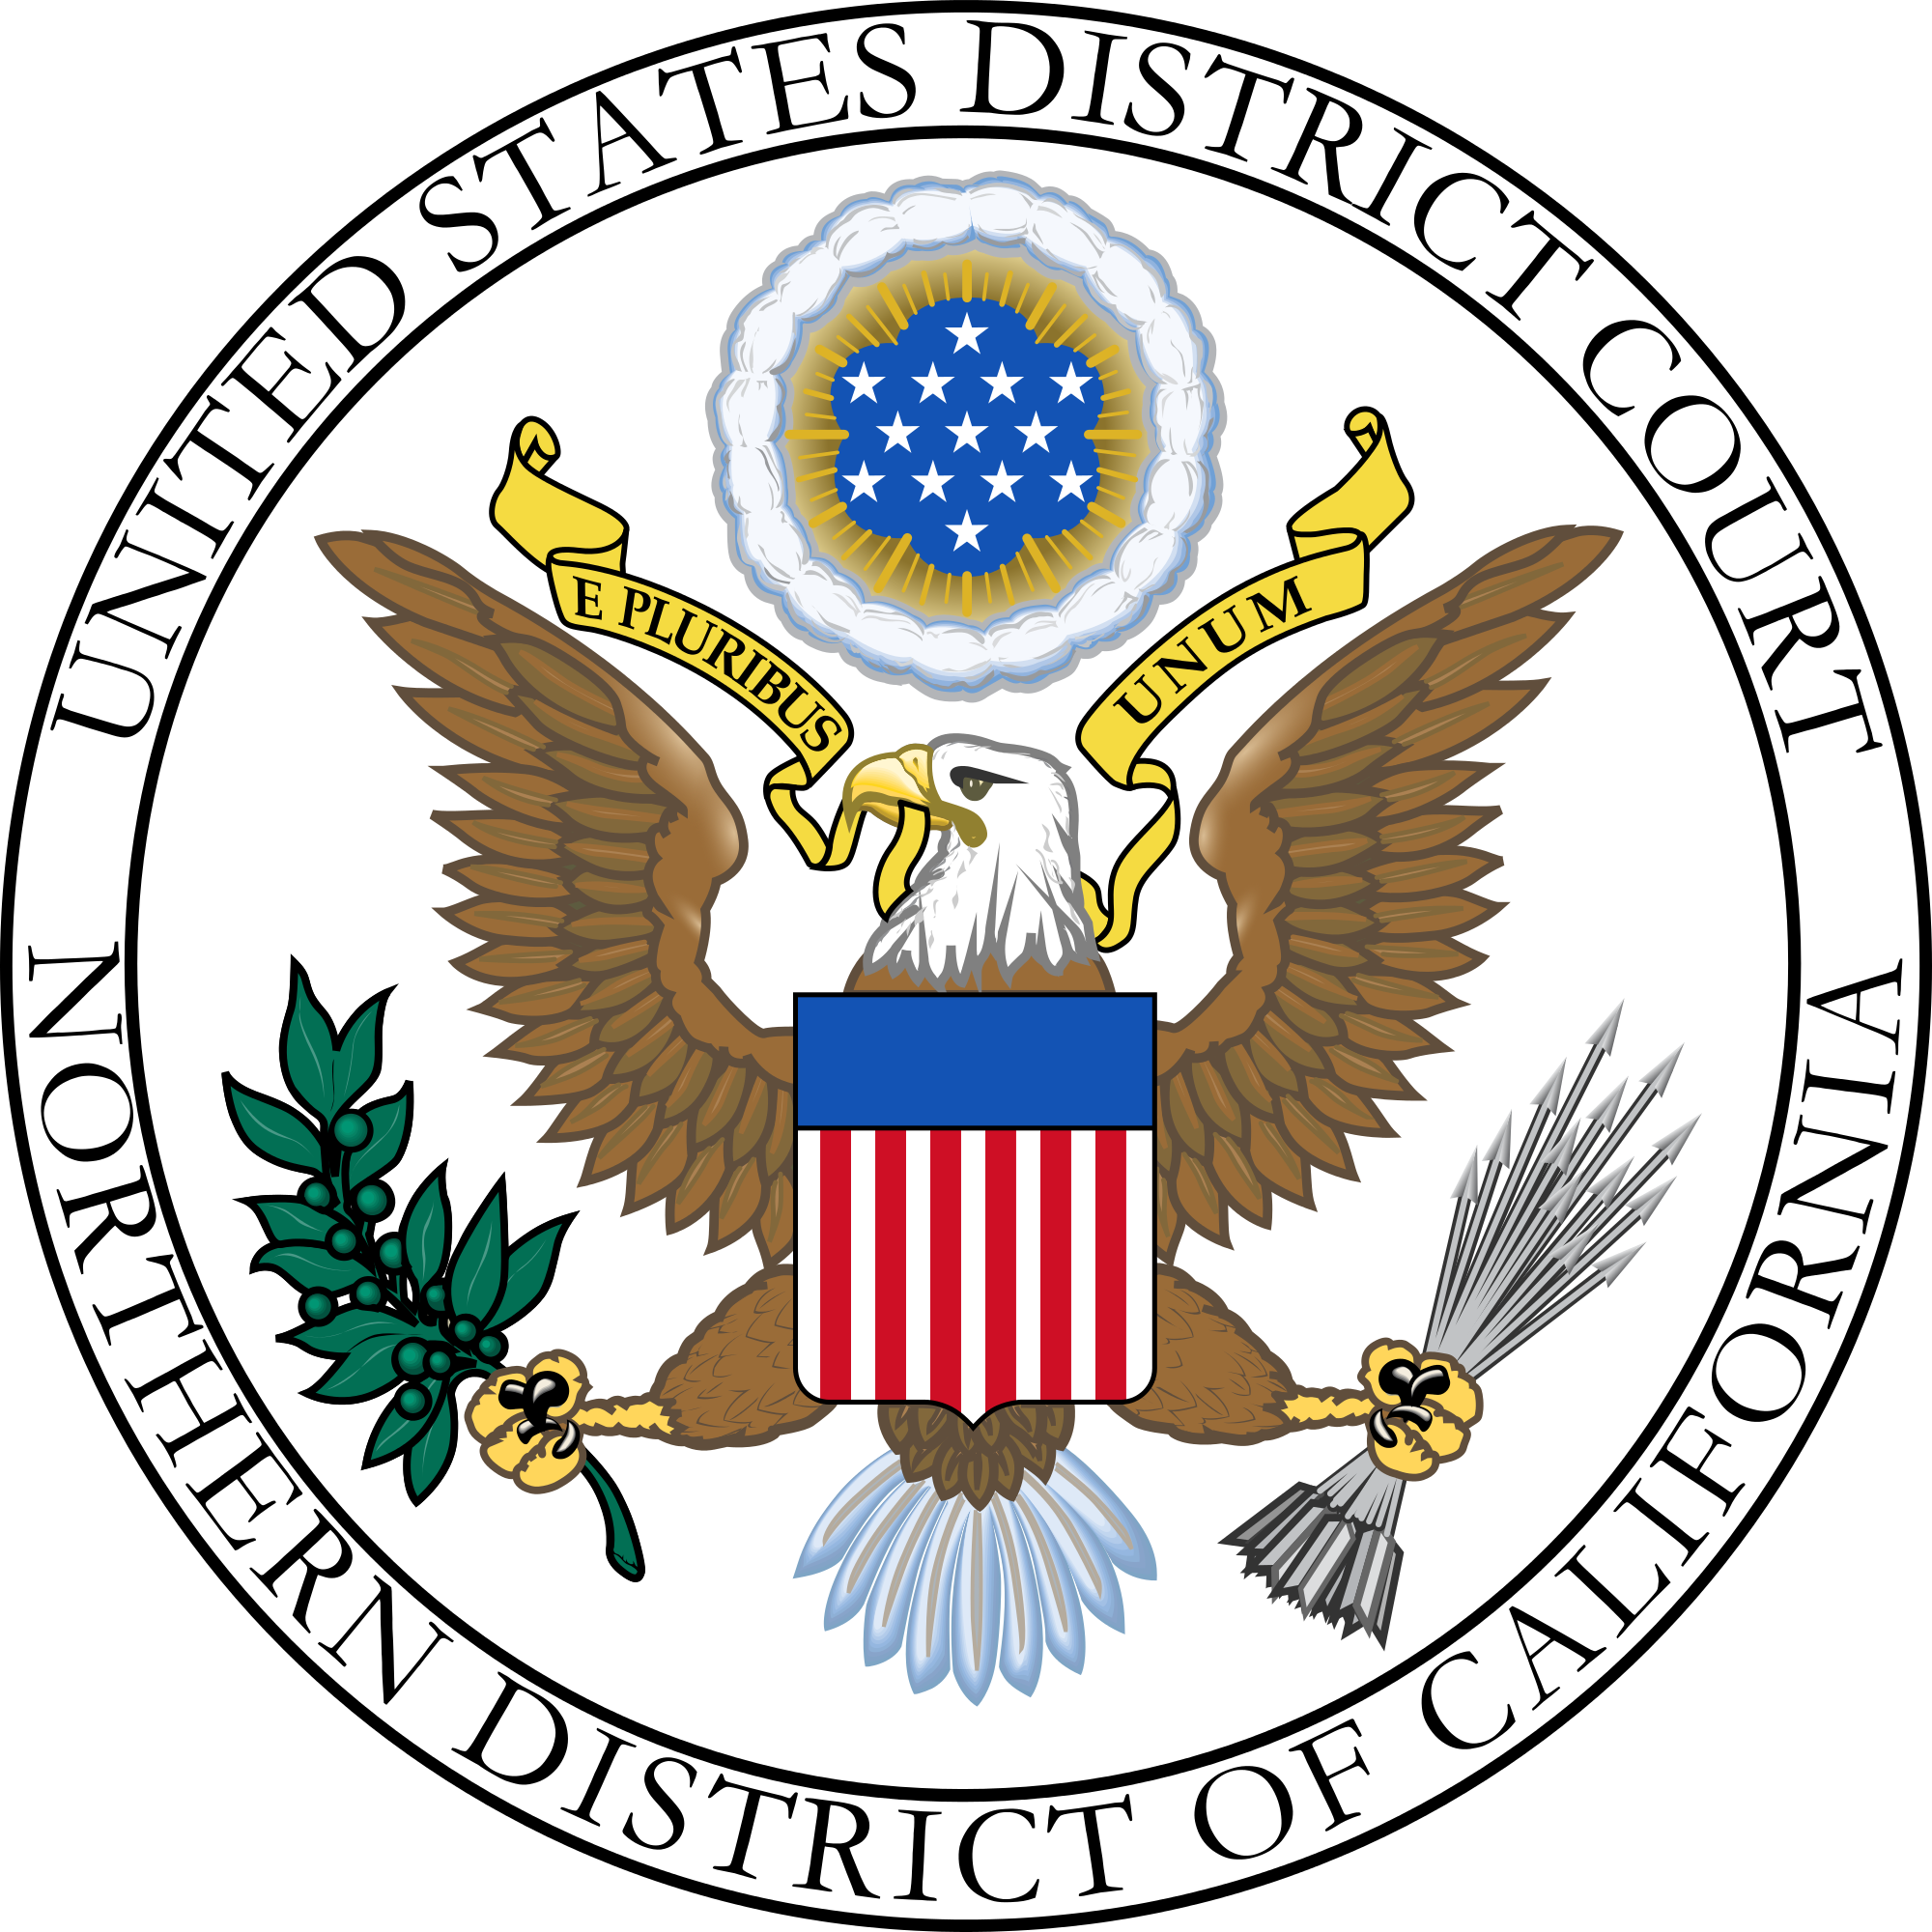 United States District Court for the Northern District of California logo